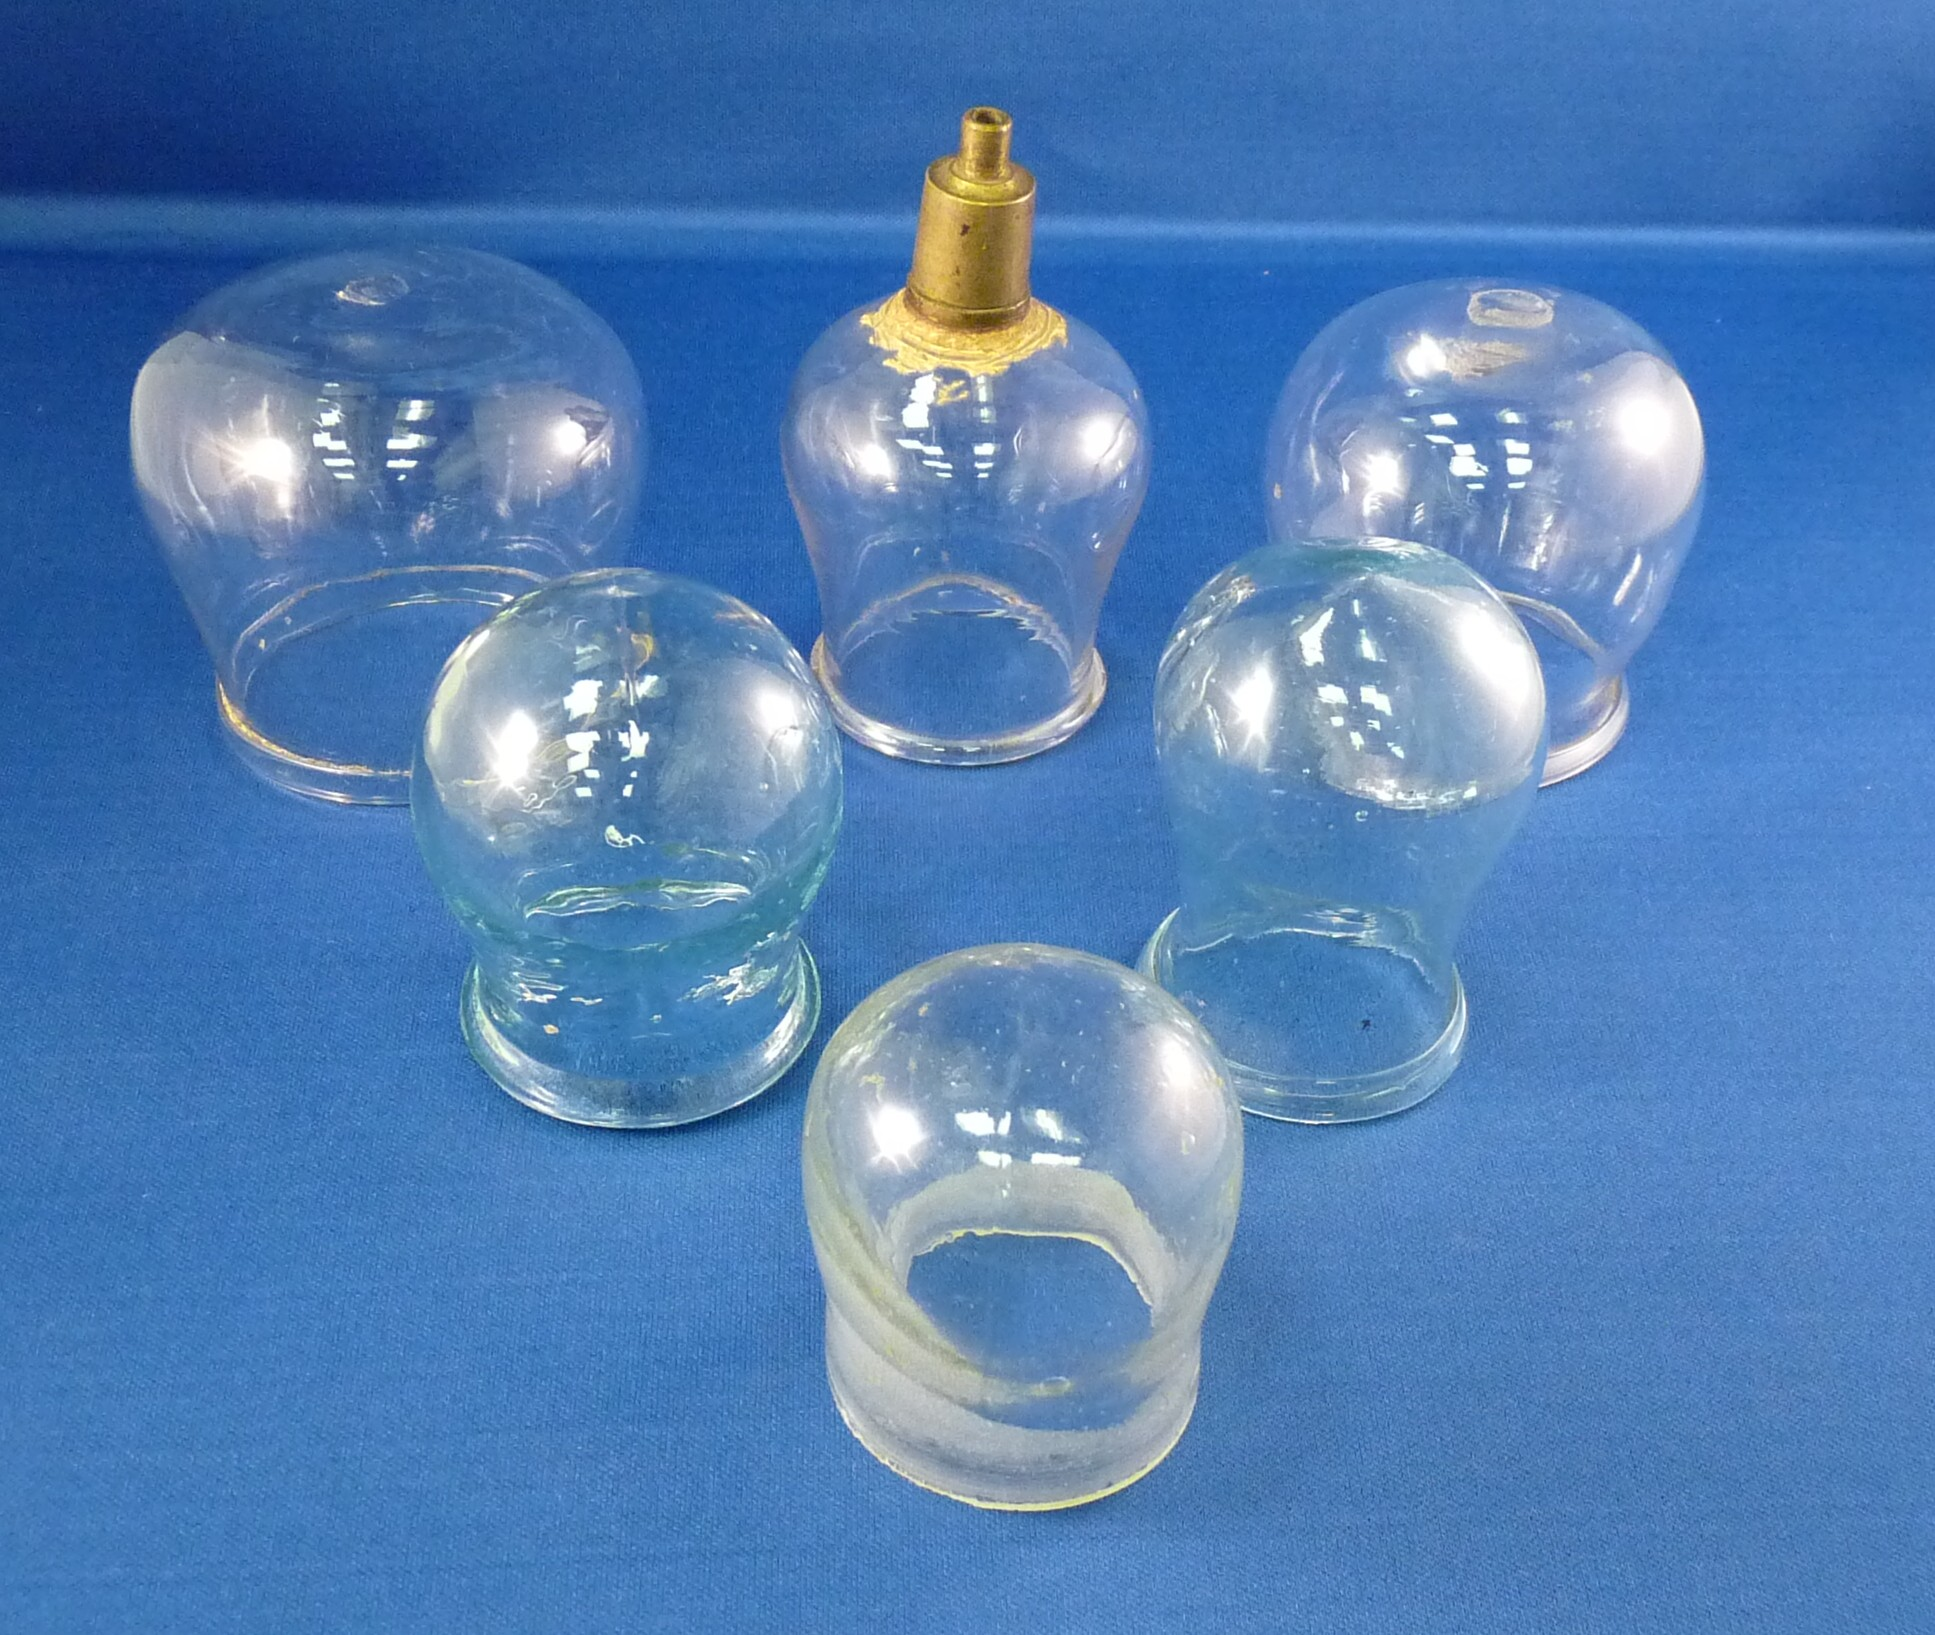 cupping glasses